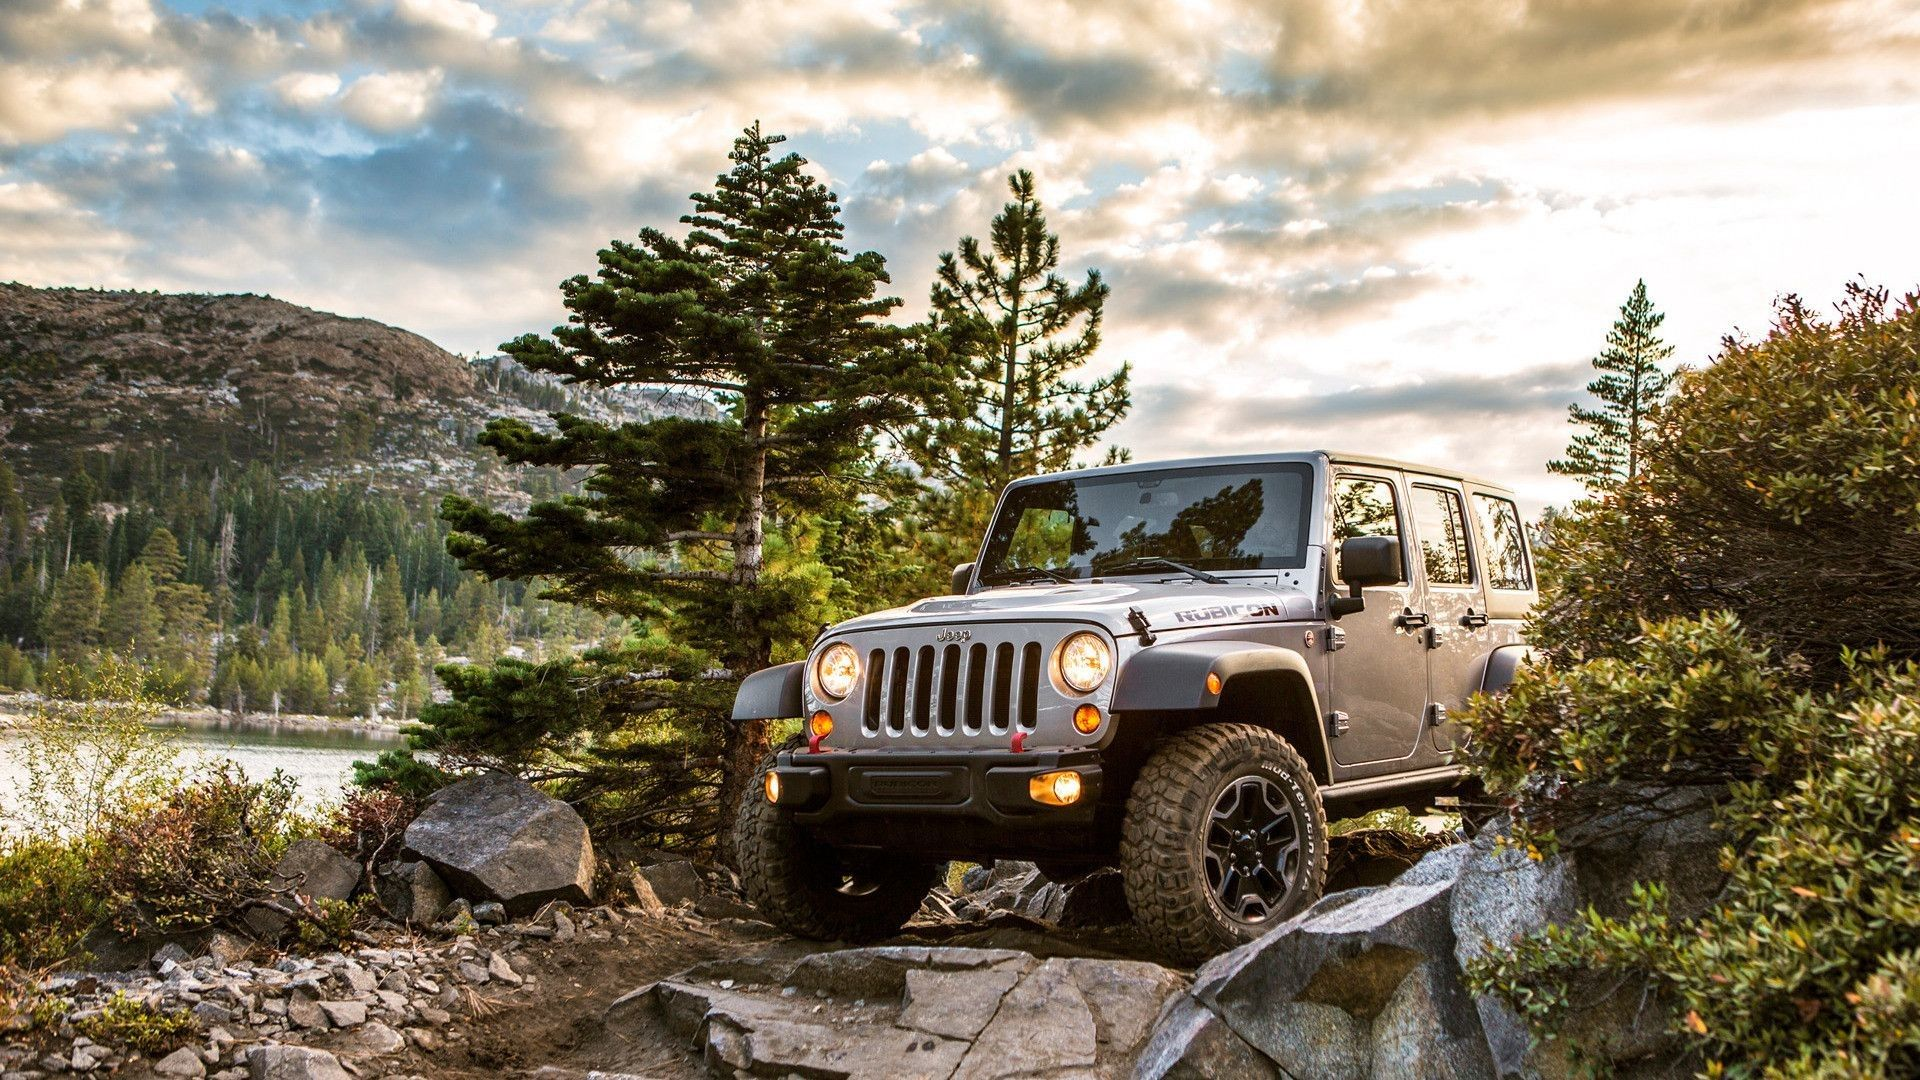 Jeep Rubicon Wallpapers   Top Jeep Rubicon Backgrounds 1920x1080